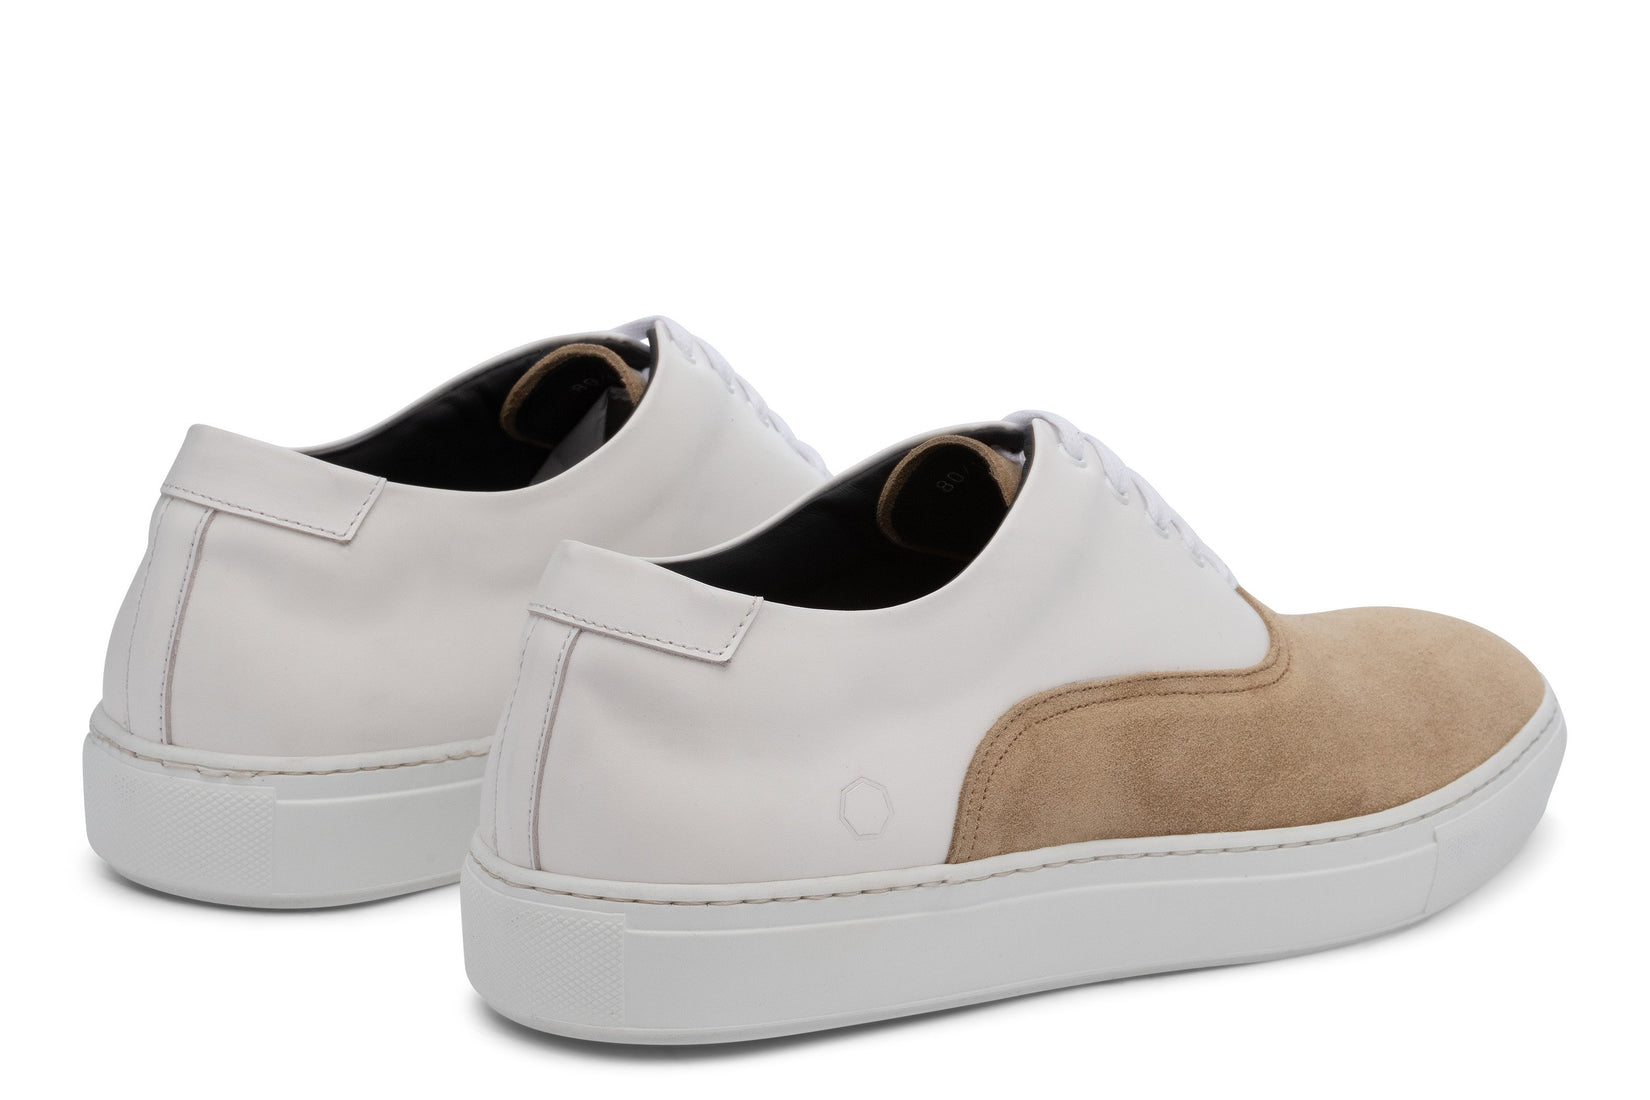 Sunday Two-Tone Skater Sneaker in White/Beige (FINAL SALE)